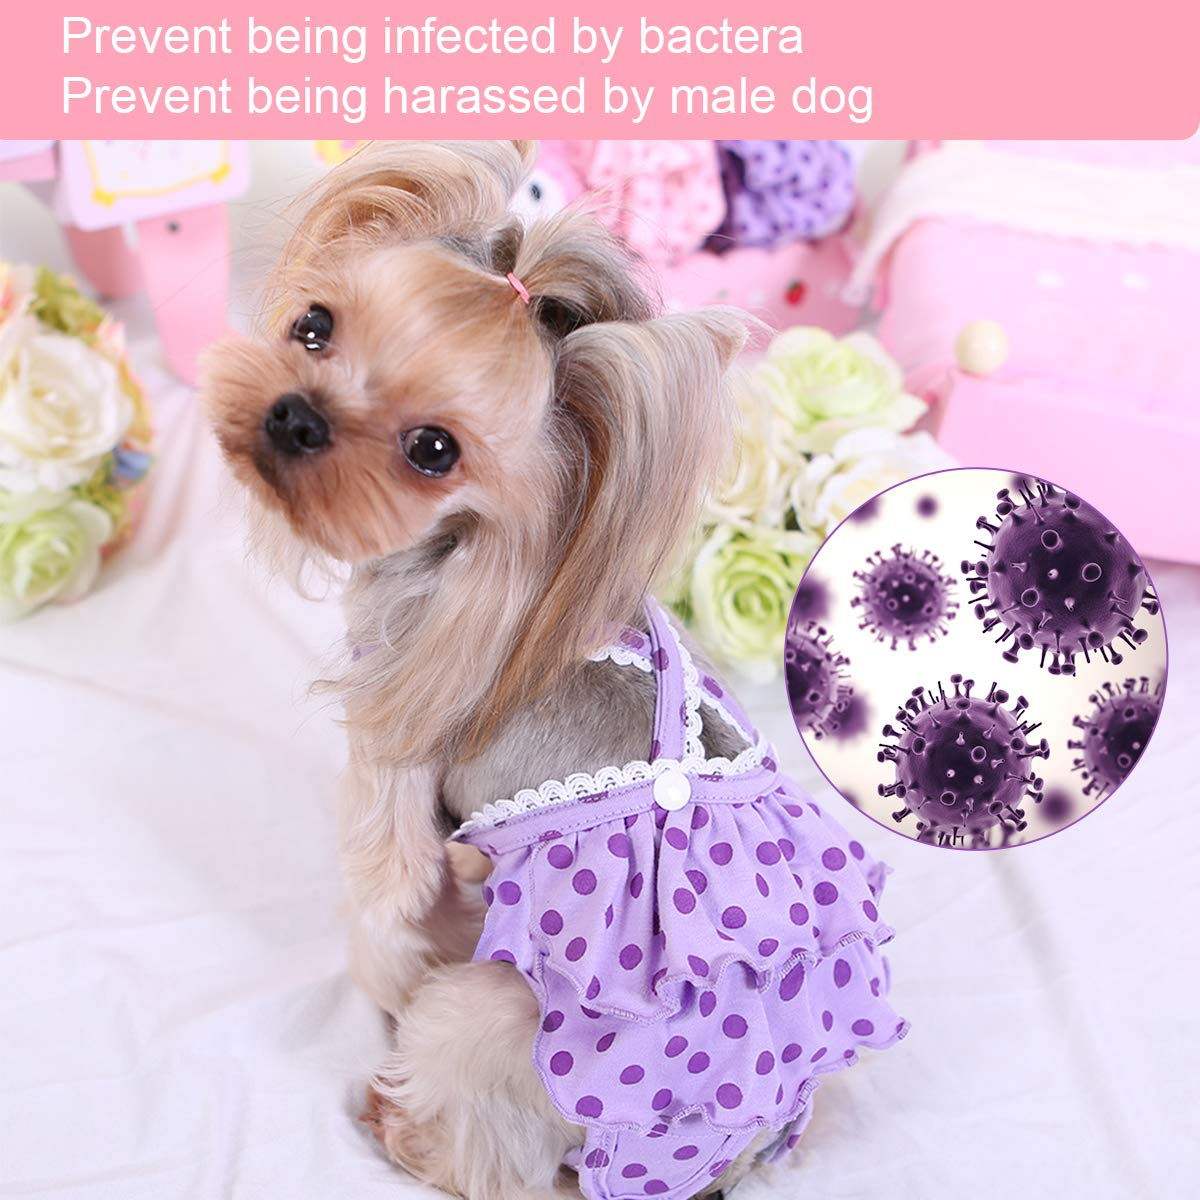 Makerfire Dog Sanitary Pants Female Dog Diapers Washable Reusable Puppy Nappies S 2Pack